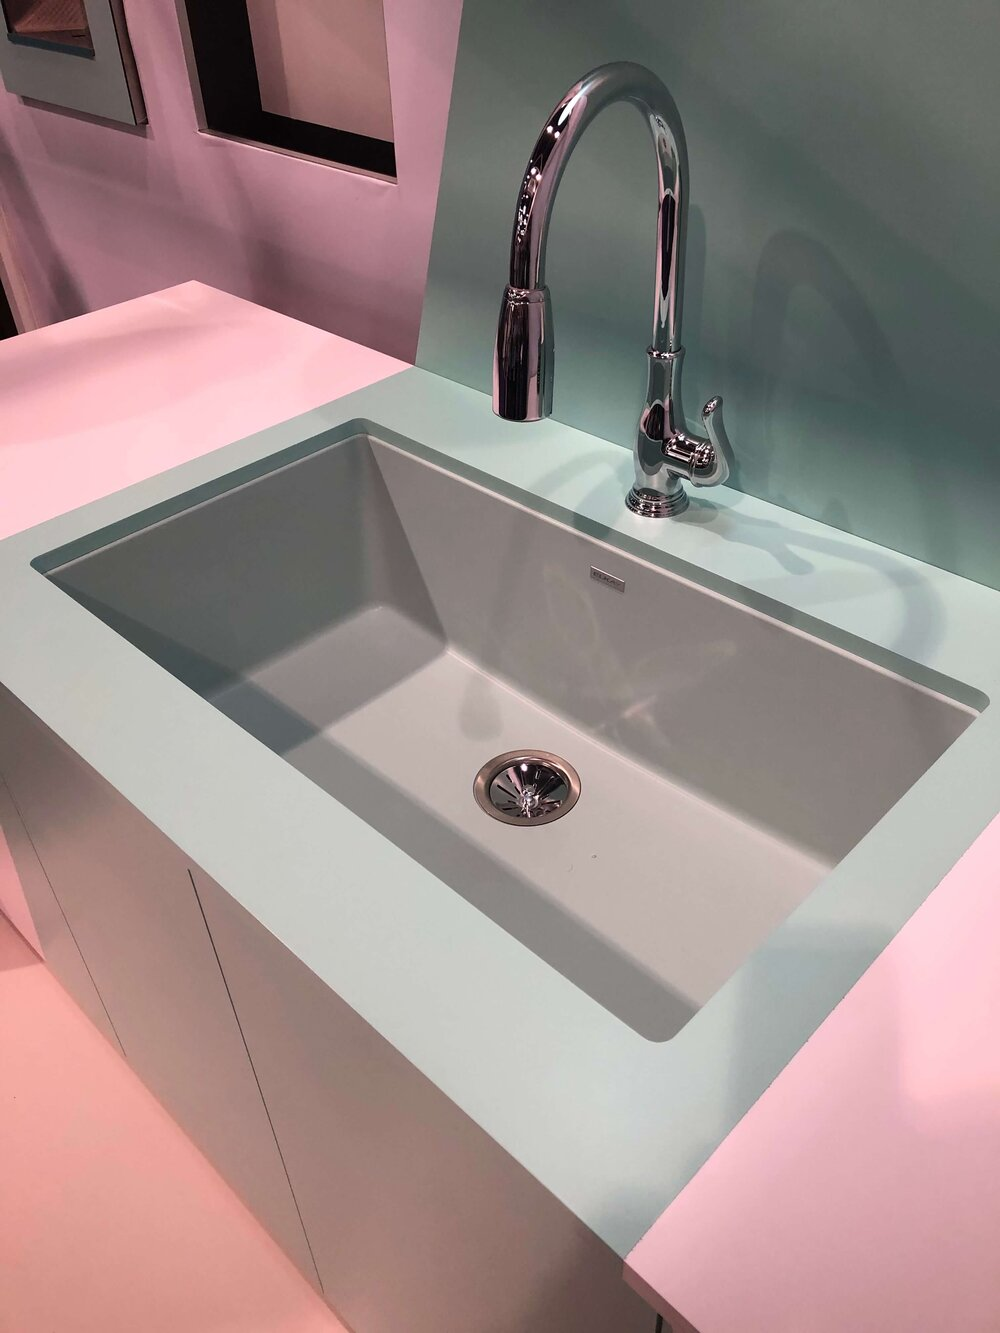 This new color of mint green was added to their collection. #kitchensink